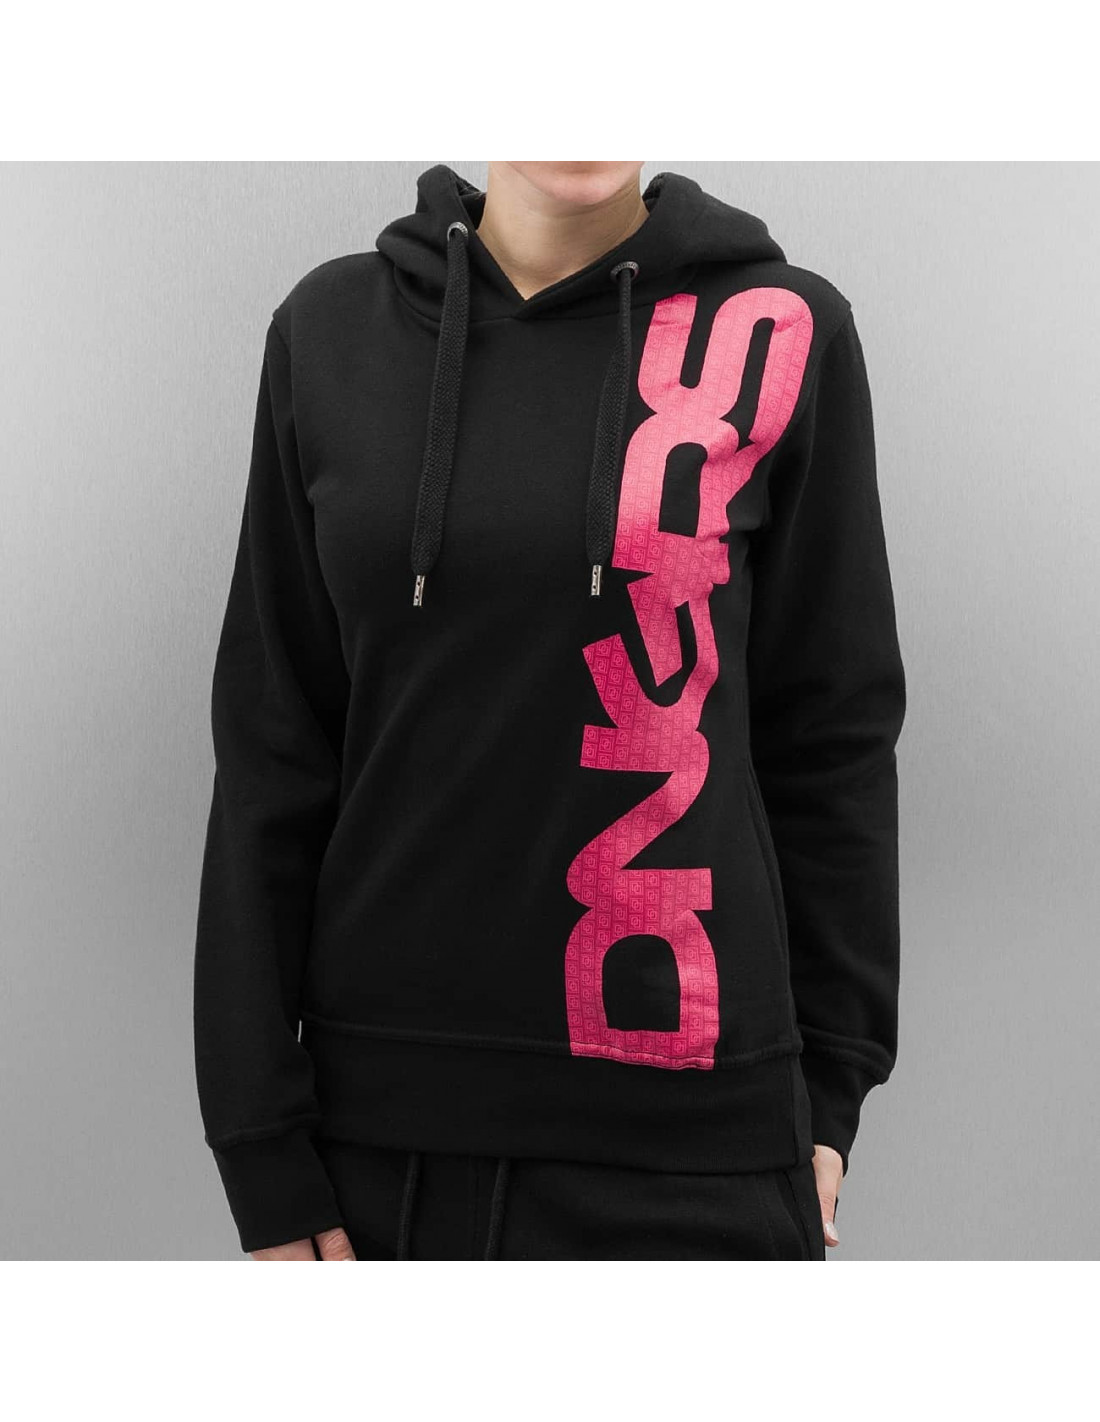 Large Logo Hoodie BlackNPink by DNGRS